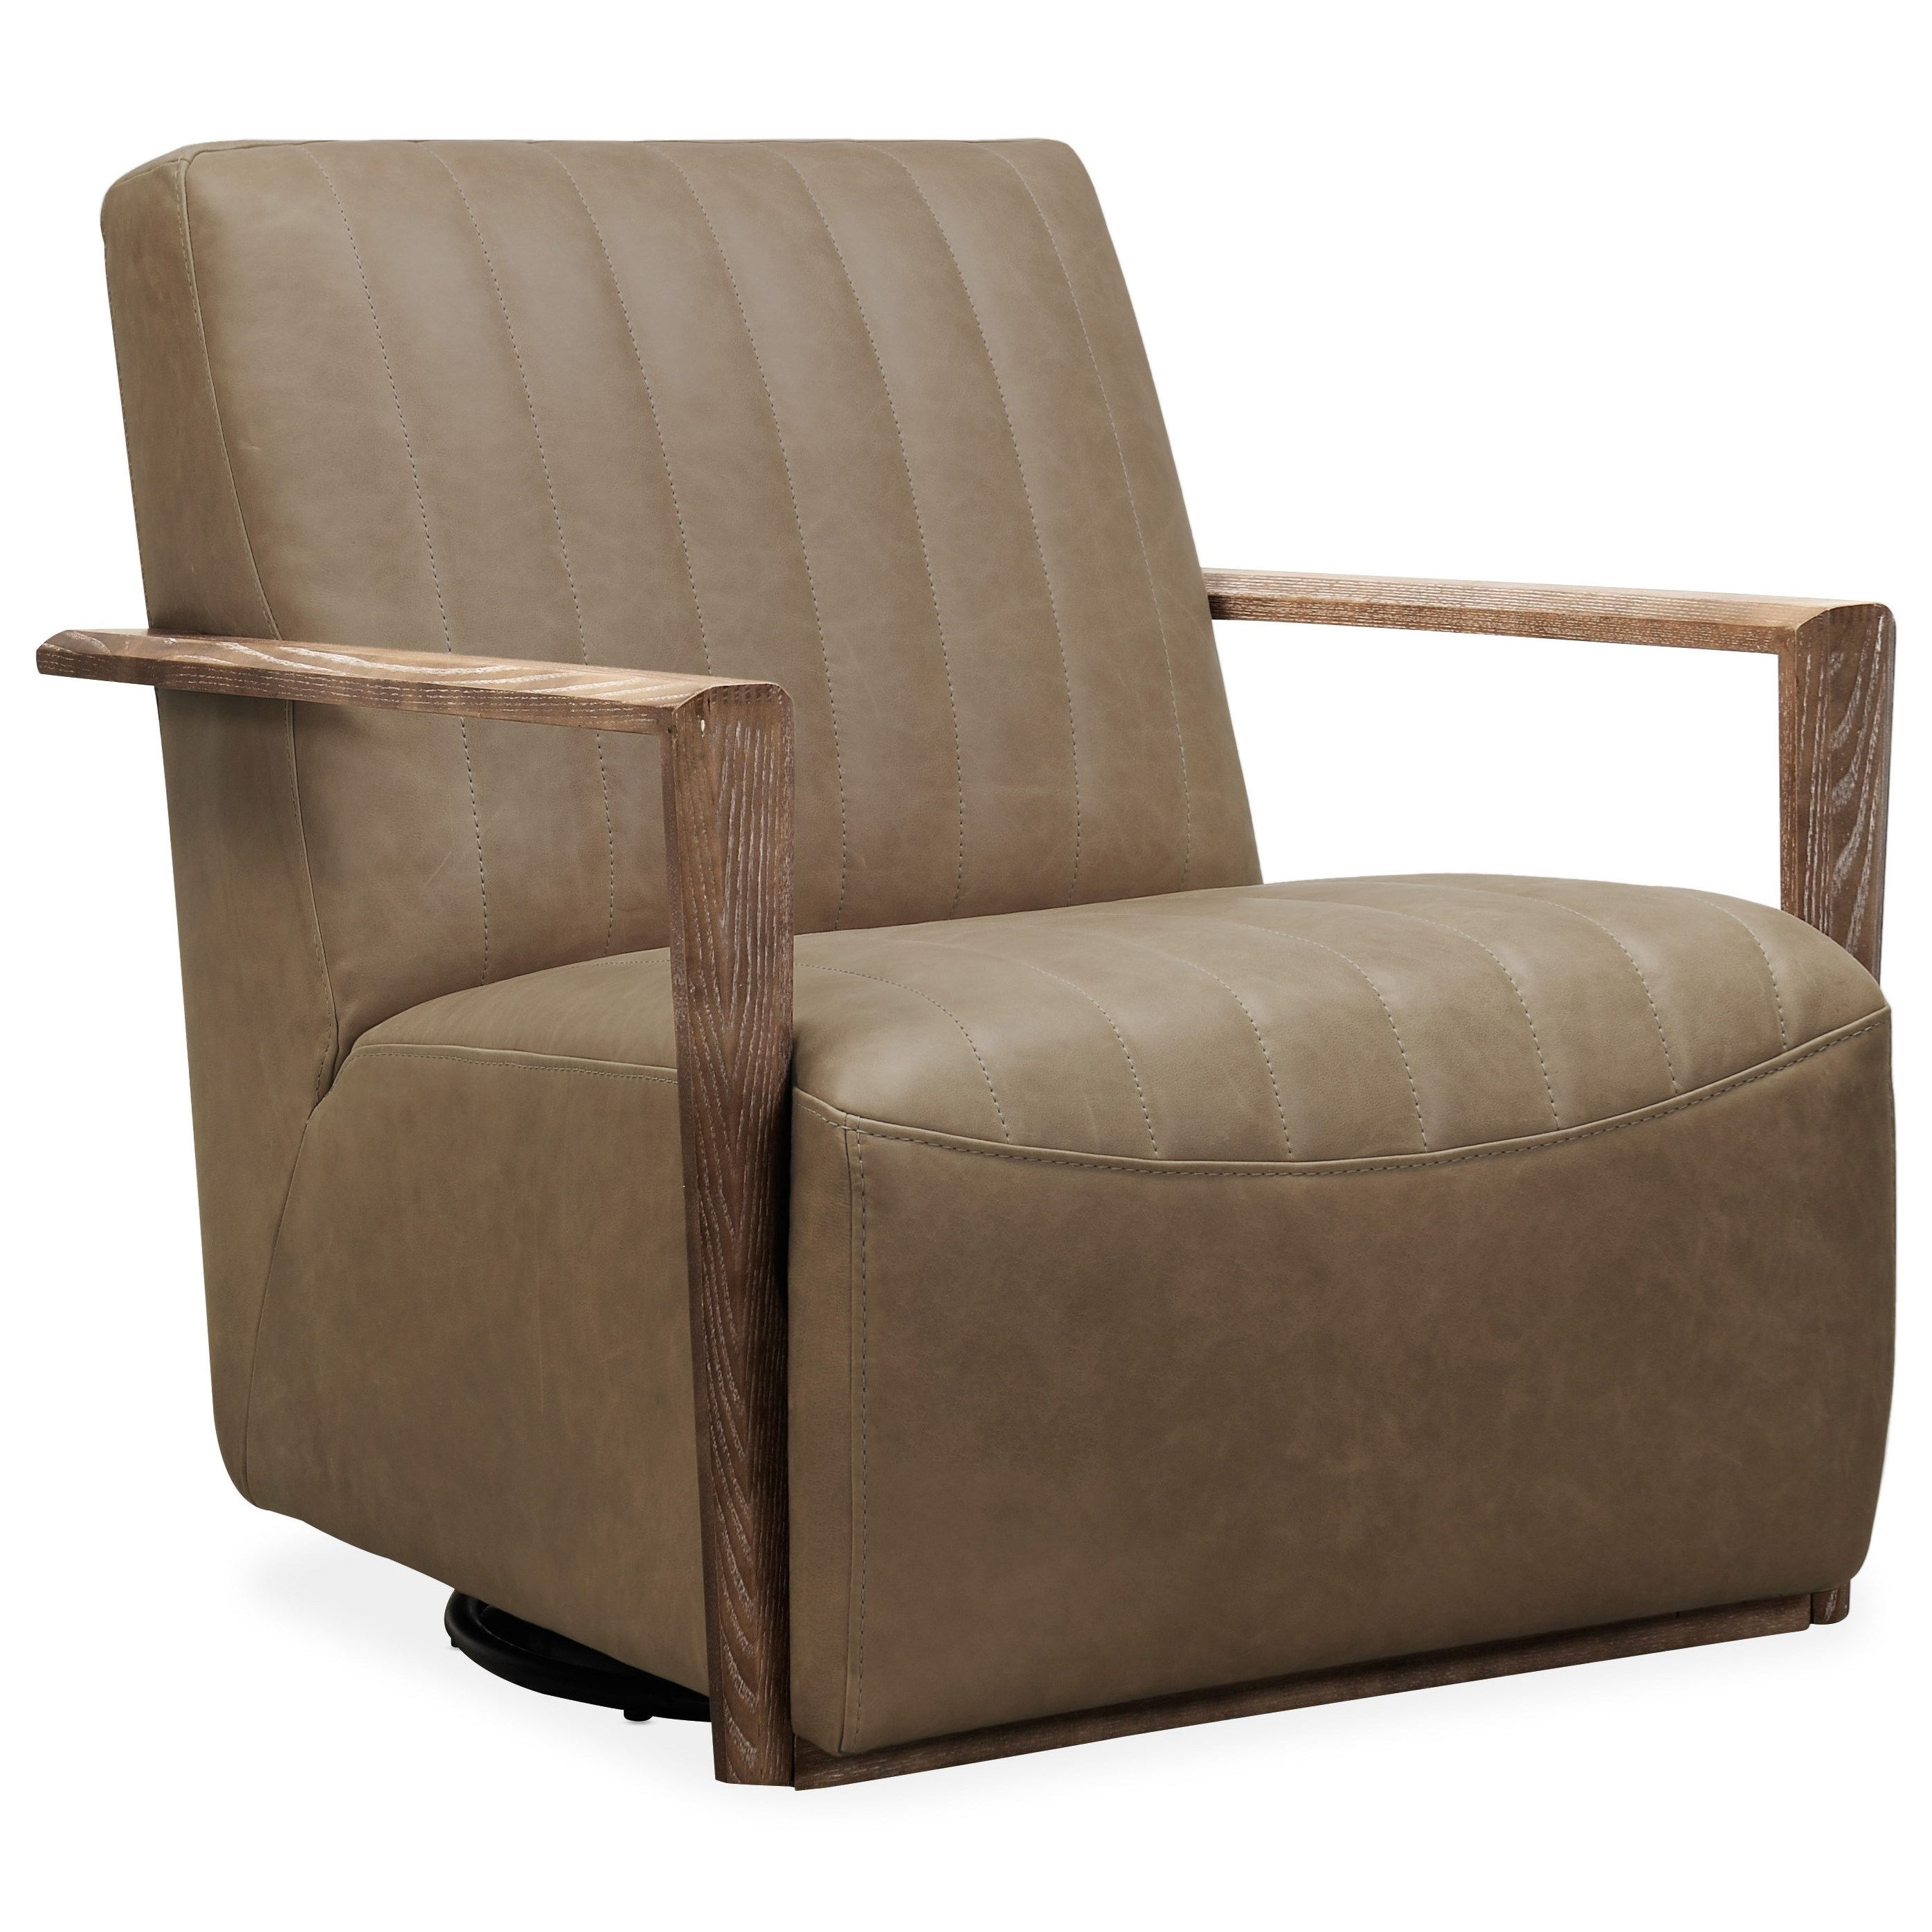 Club Chairs Sophia Swivel Club Chair by Hooker Furniture at Miller Waldrop Furniture and Decor